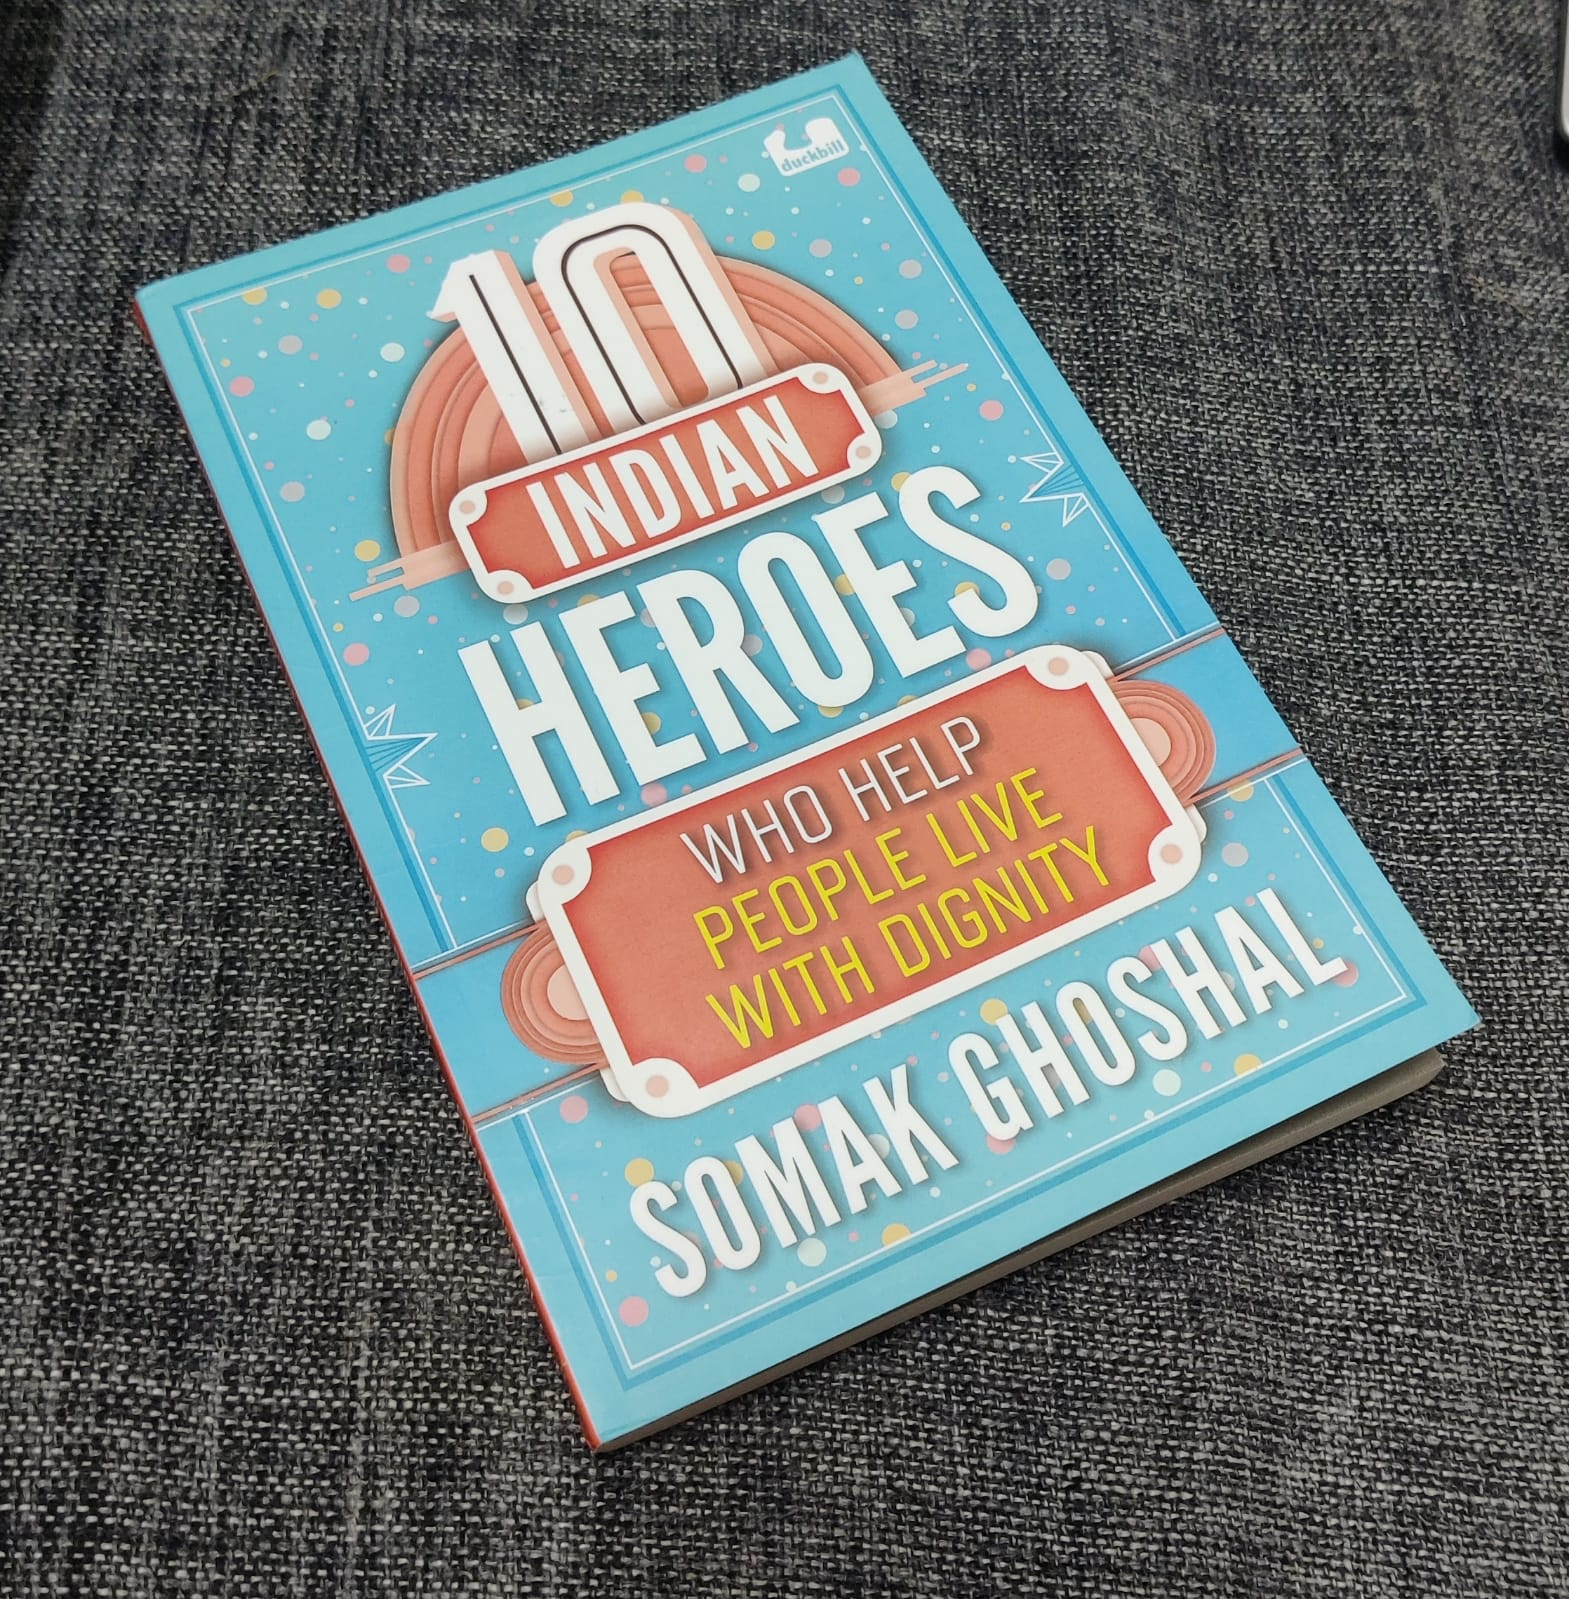 Review: 10 Indian Heroes Who Help People Live With Dignity